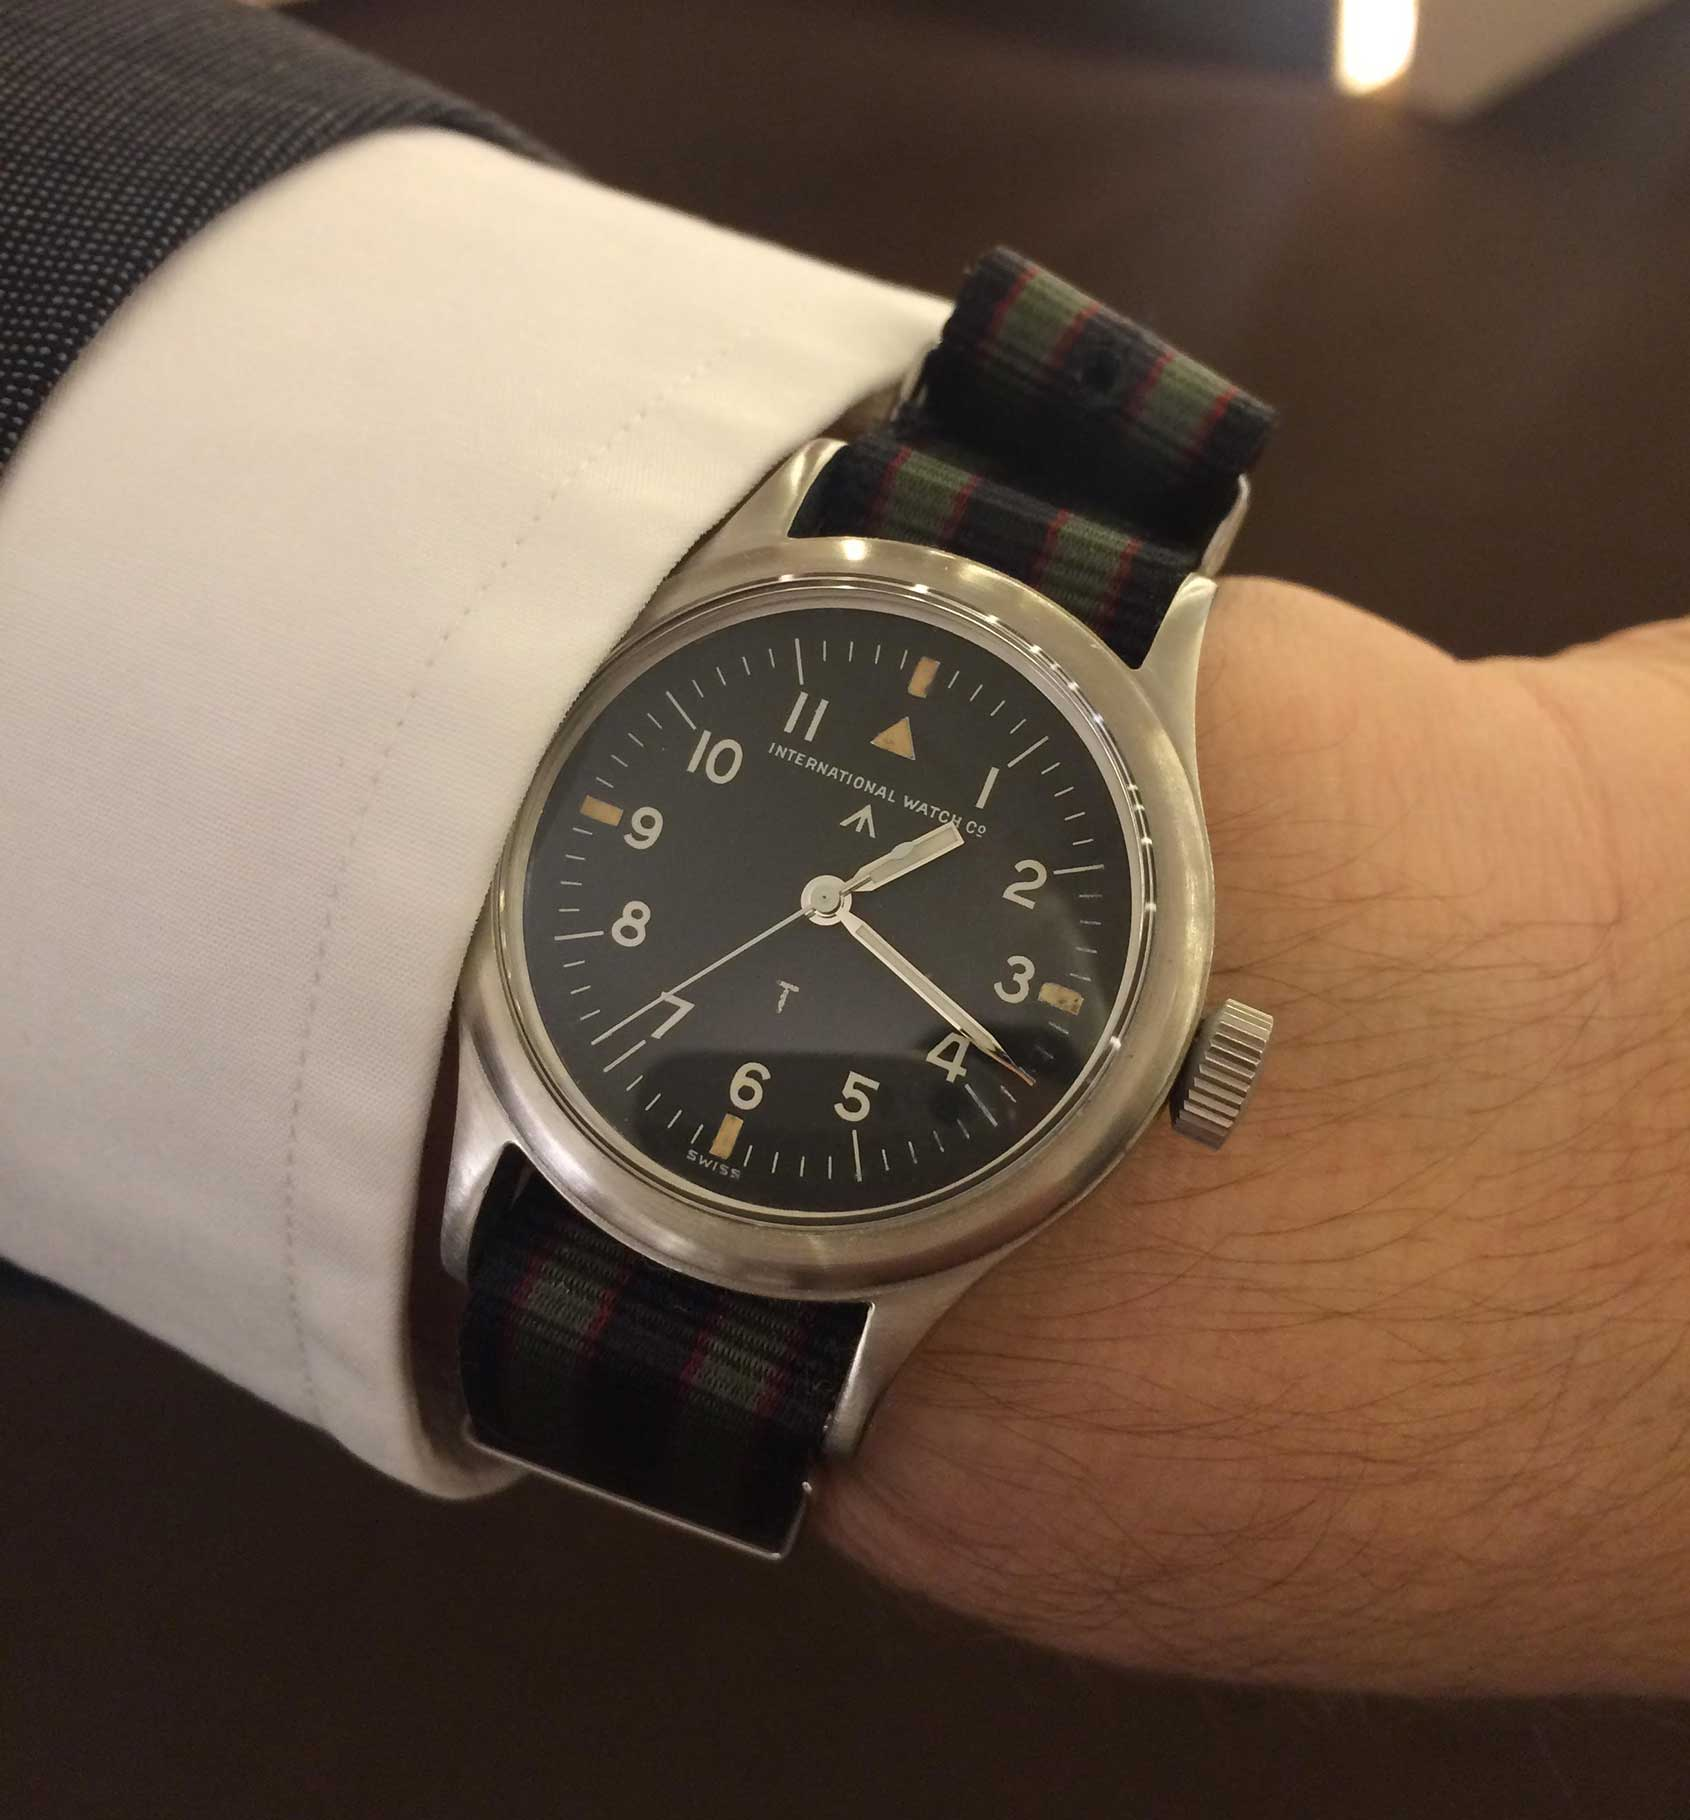 Watch marks on wrist - In The Subsequent 68 Years And Five Design Revisions Iwc Didn T Make Marks Xiii Or Xiv As These Numbers Are Considered Unlucky In Some Cultures The Watch